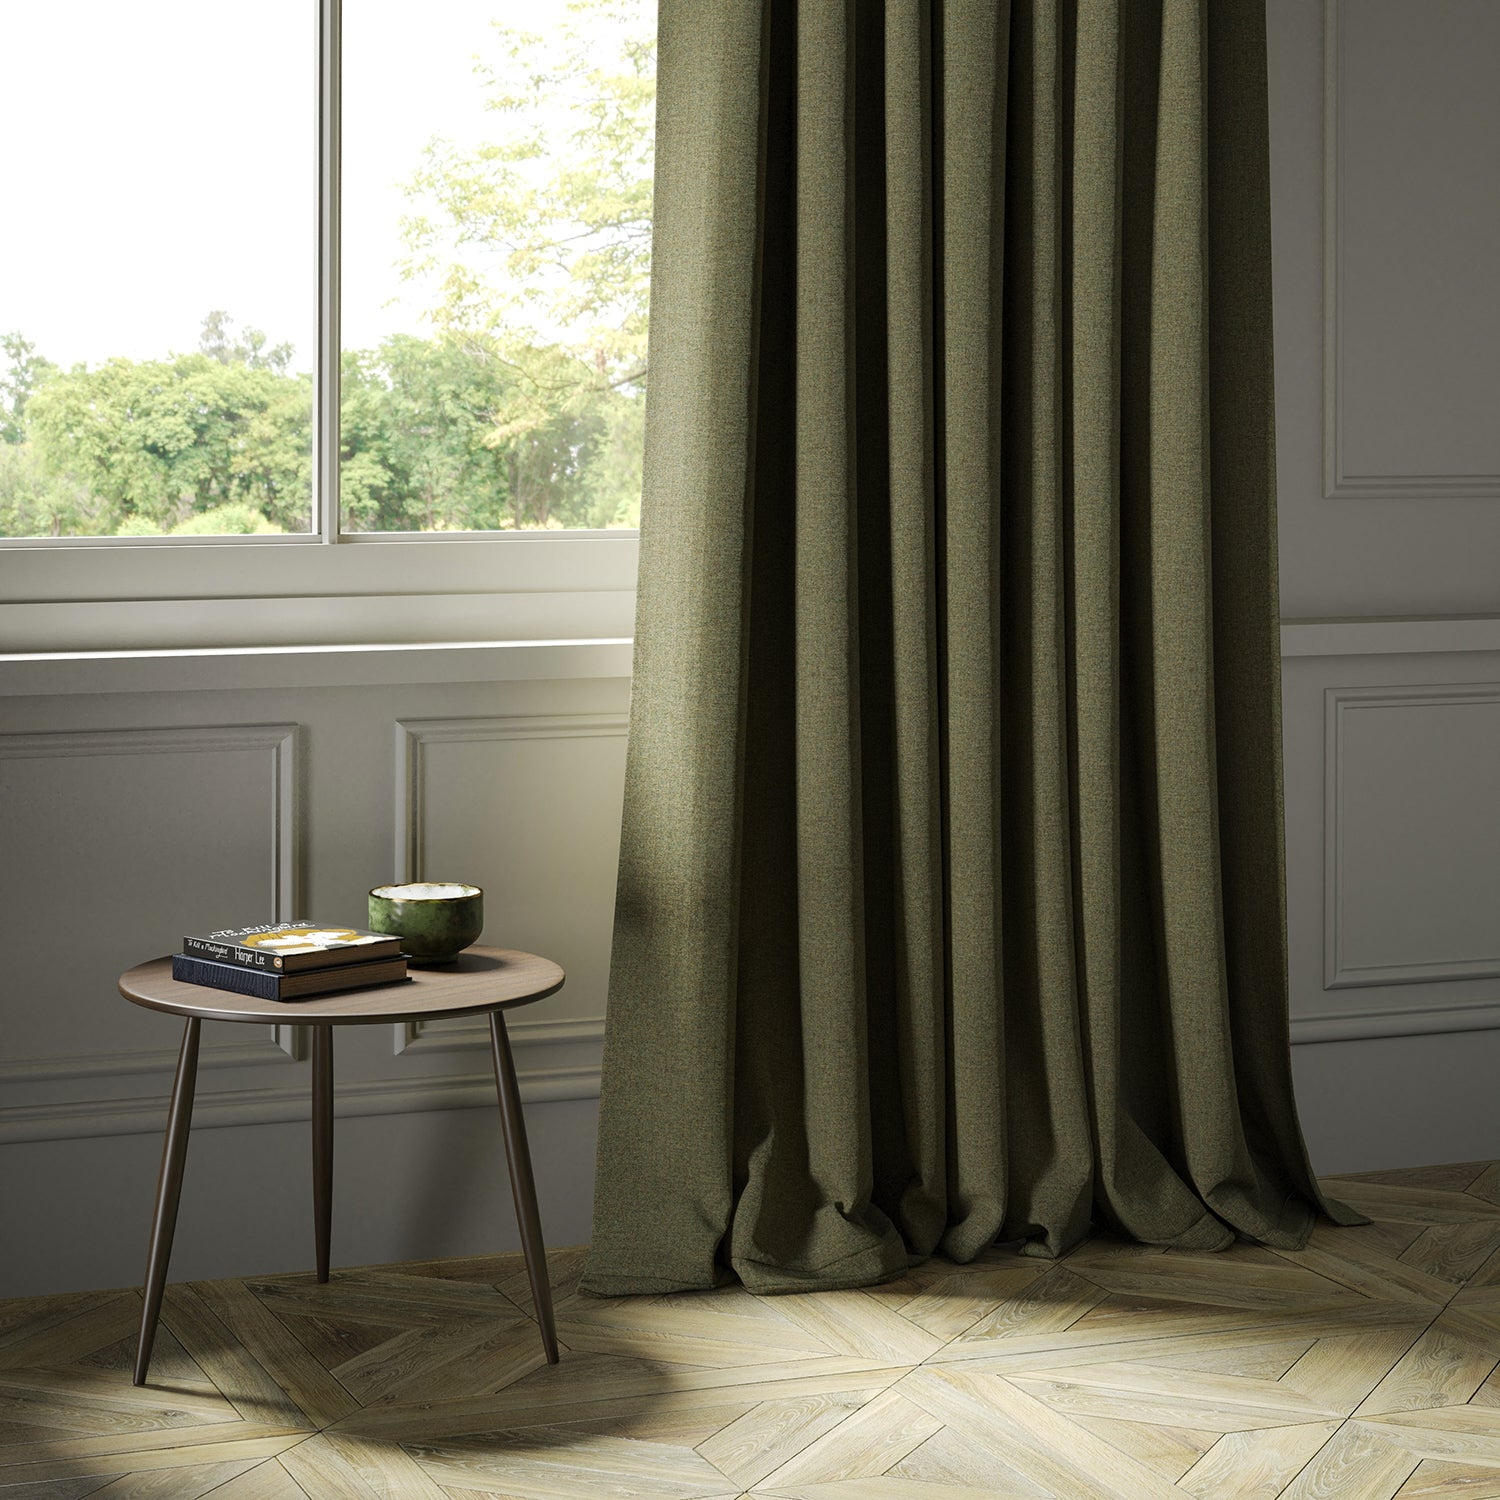 Curtains in a khaki Scottish wool herringbone fabric